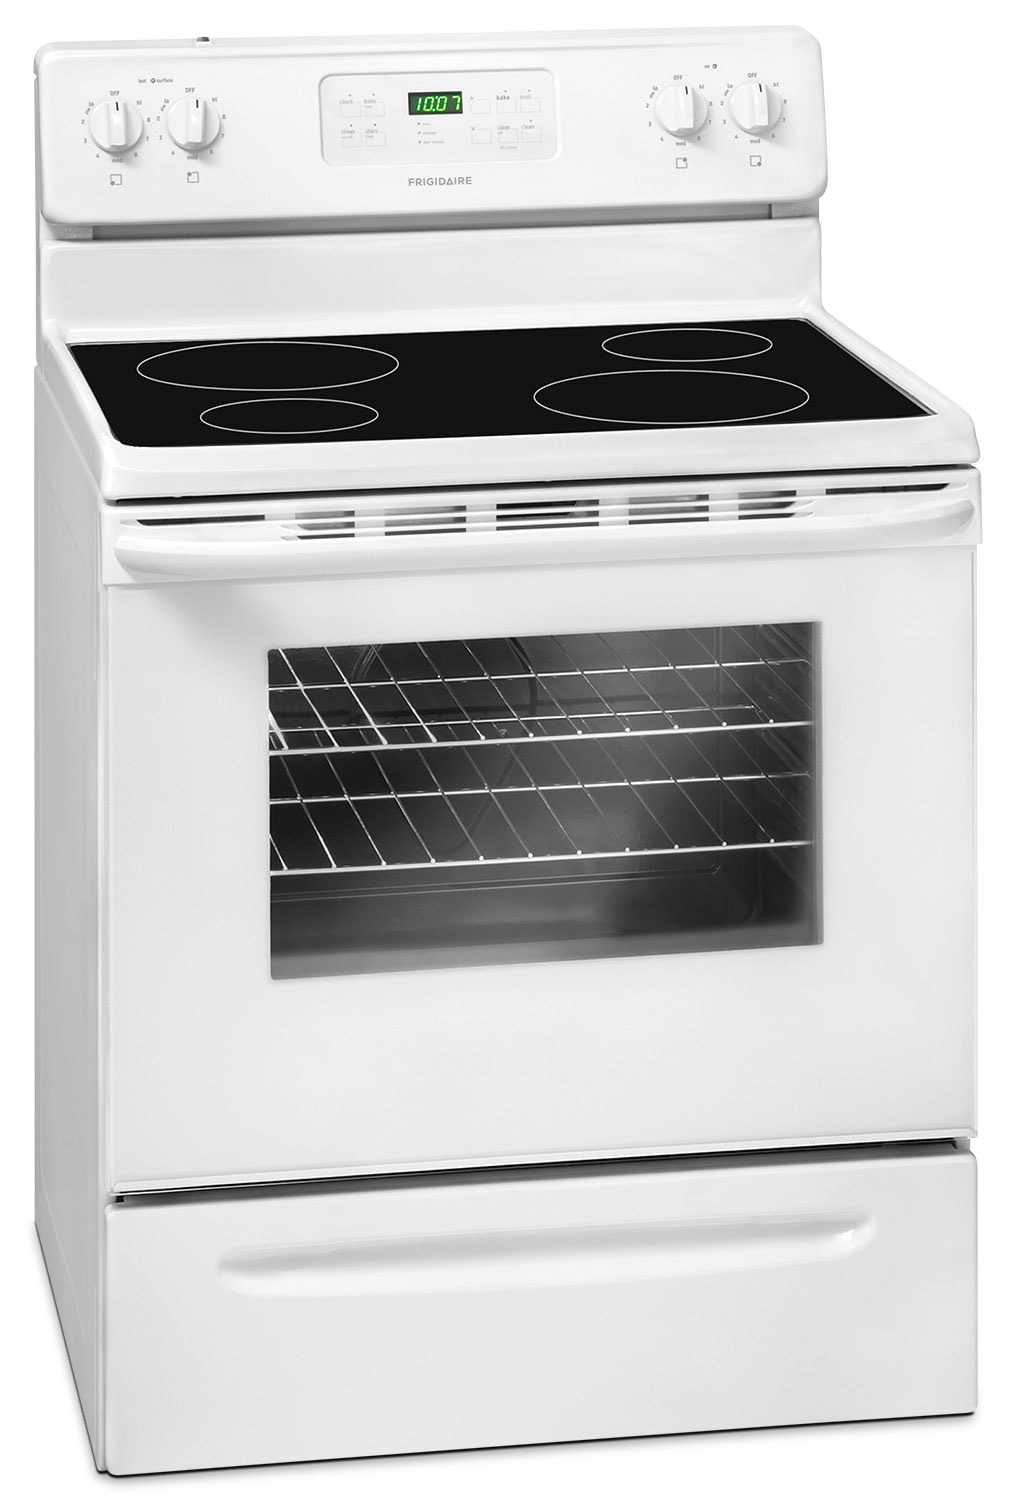 marvelous Best Place To Get Kitchen Appliances #10: Frigidaire 5.3 Cu. Ft. Freestanding Electric Range u2013 CFEF3014TW